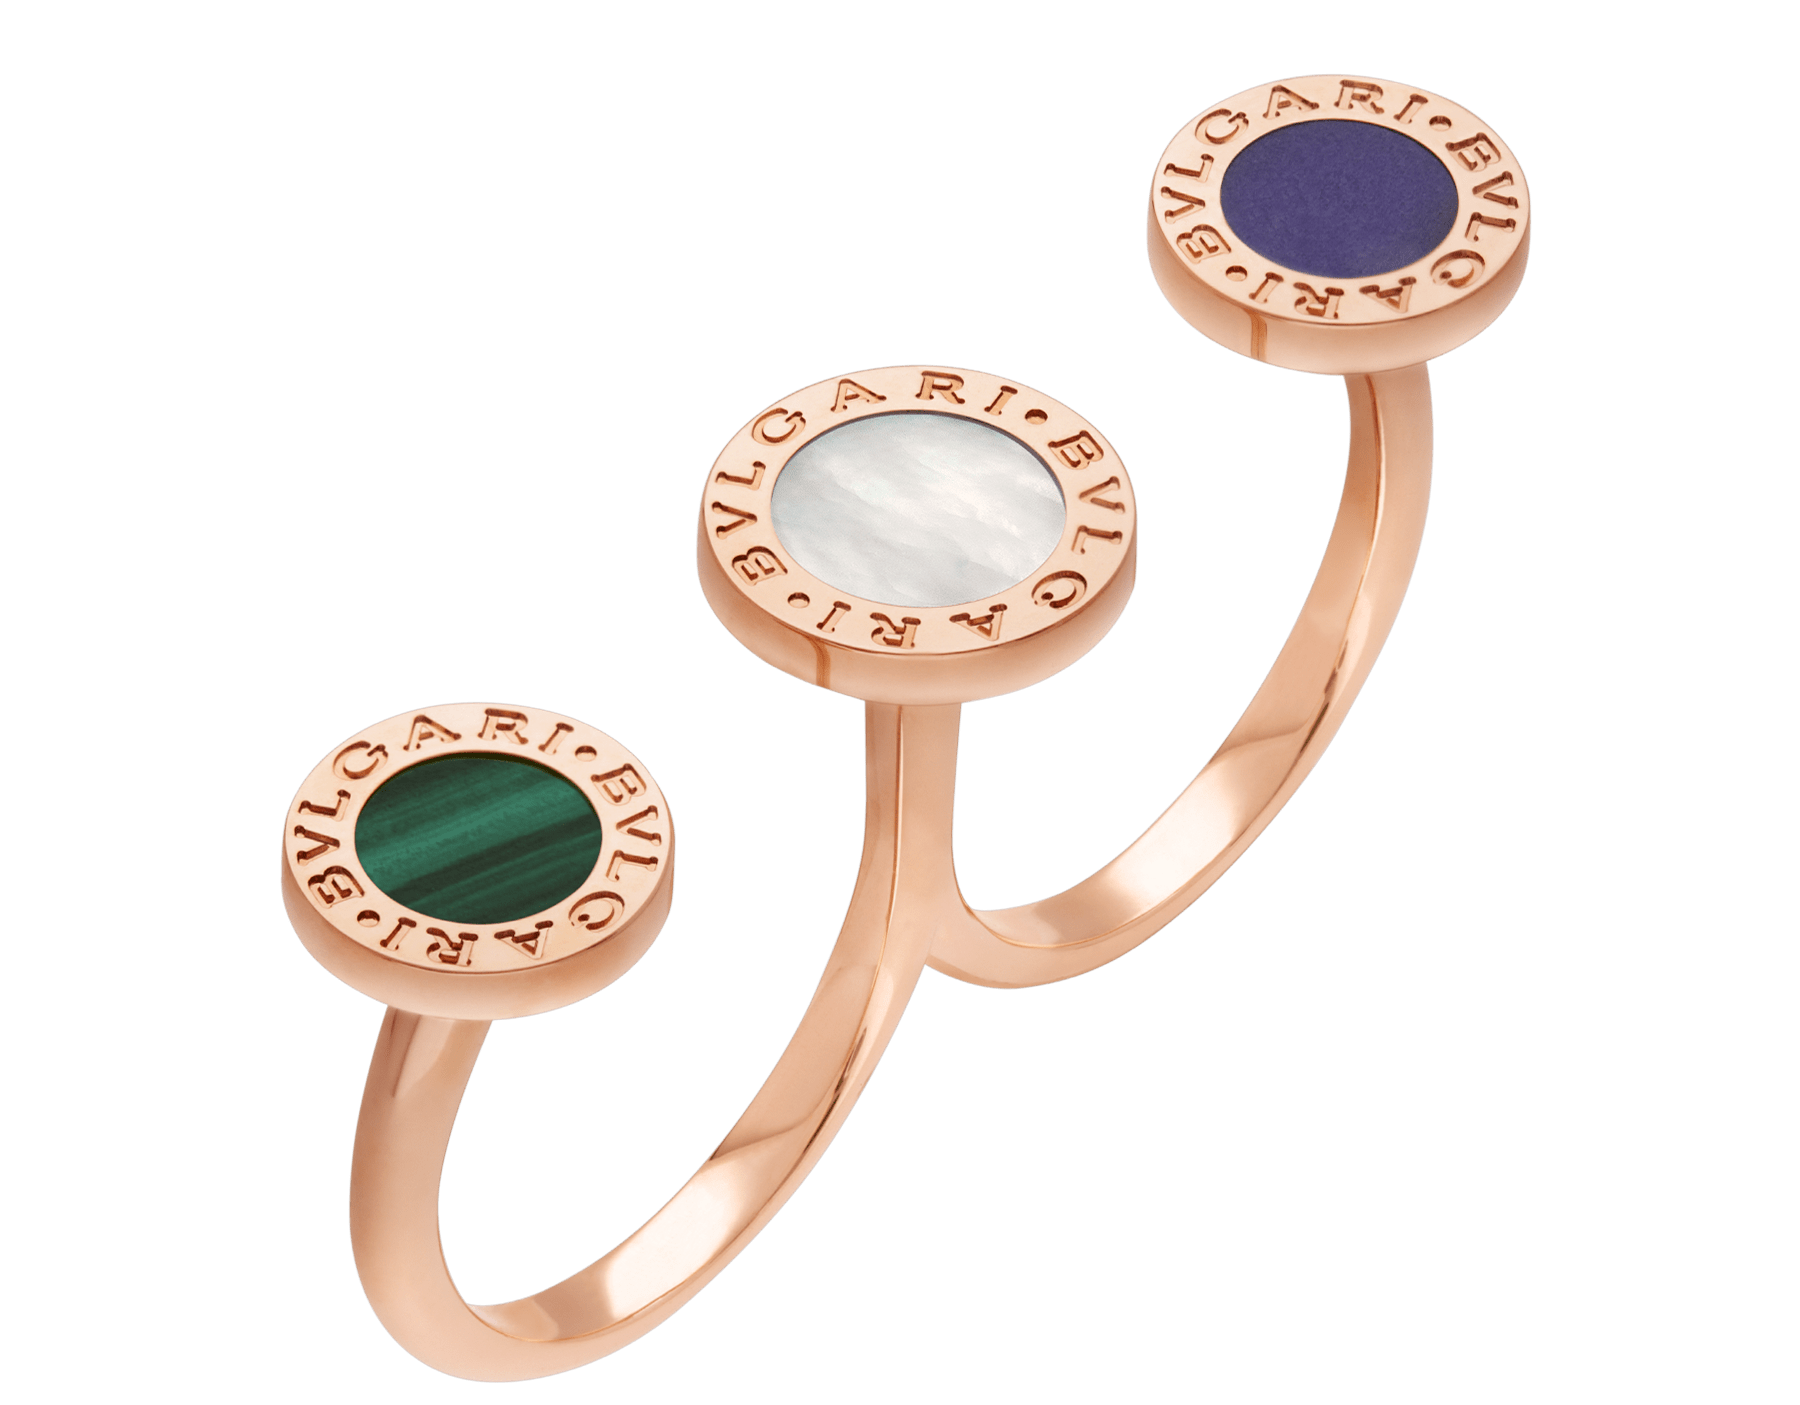 BVLGARI BVLGARI open ring in 18 kt rose gold set with mother-of-pearl, malachite and sugilite elements AN858545 image 1